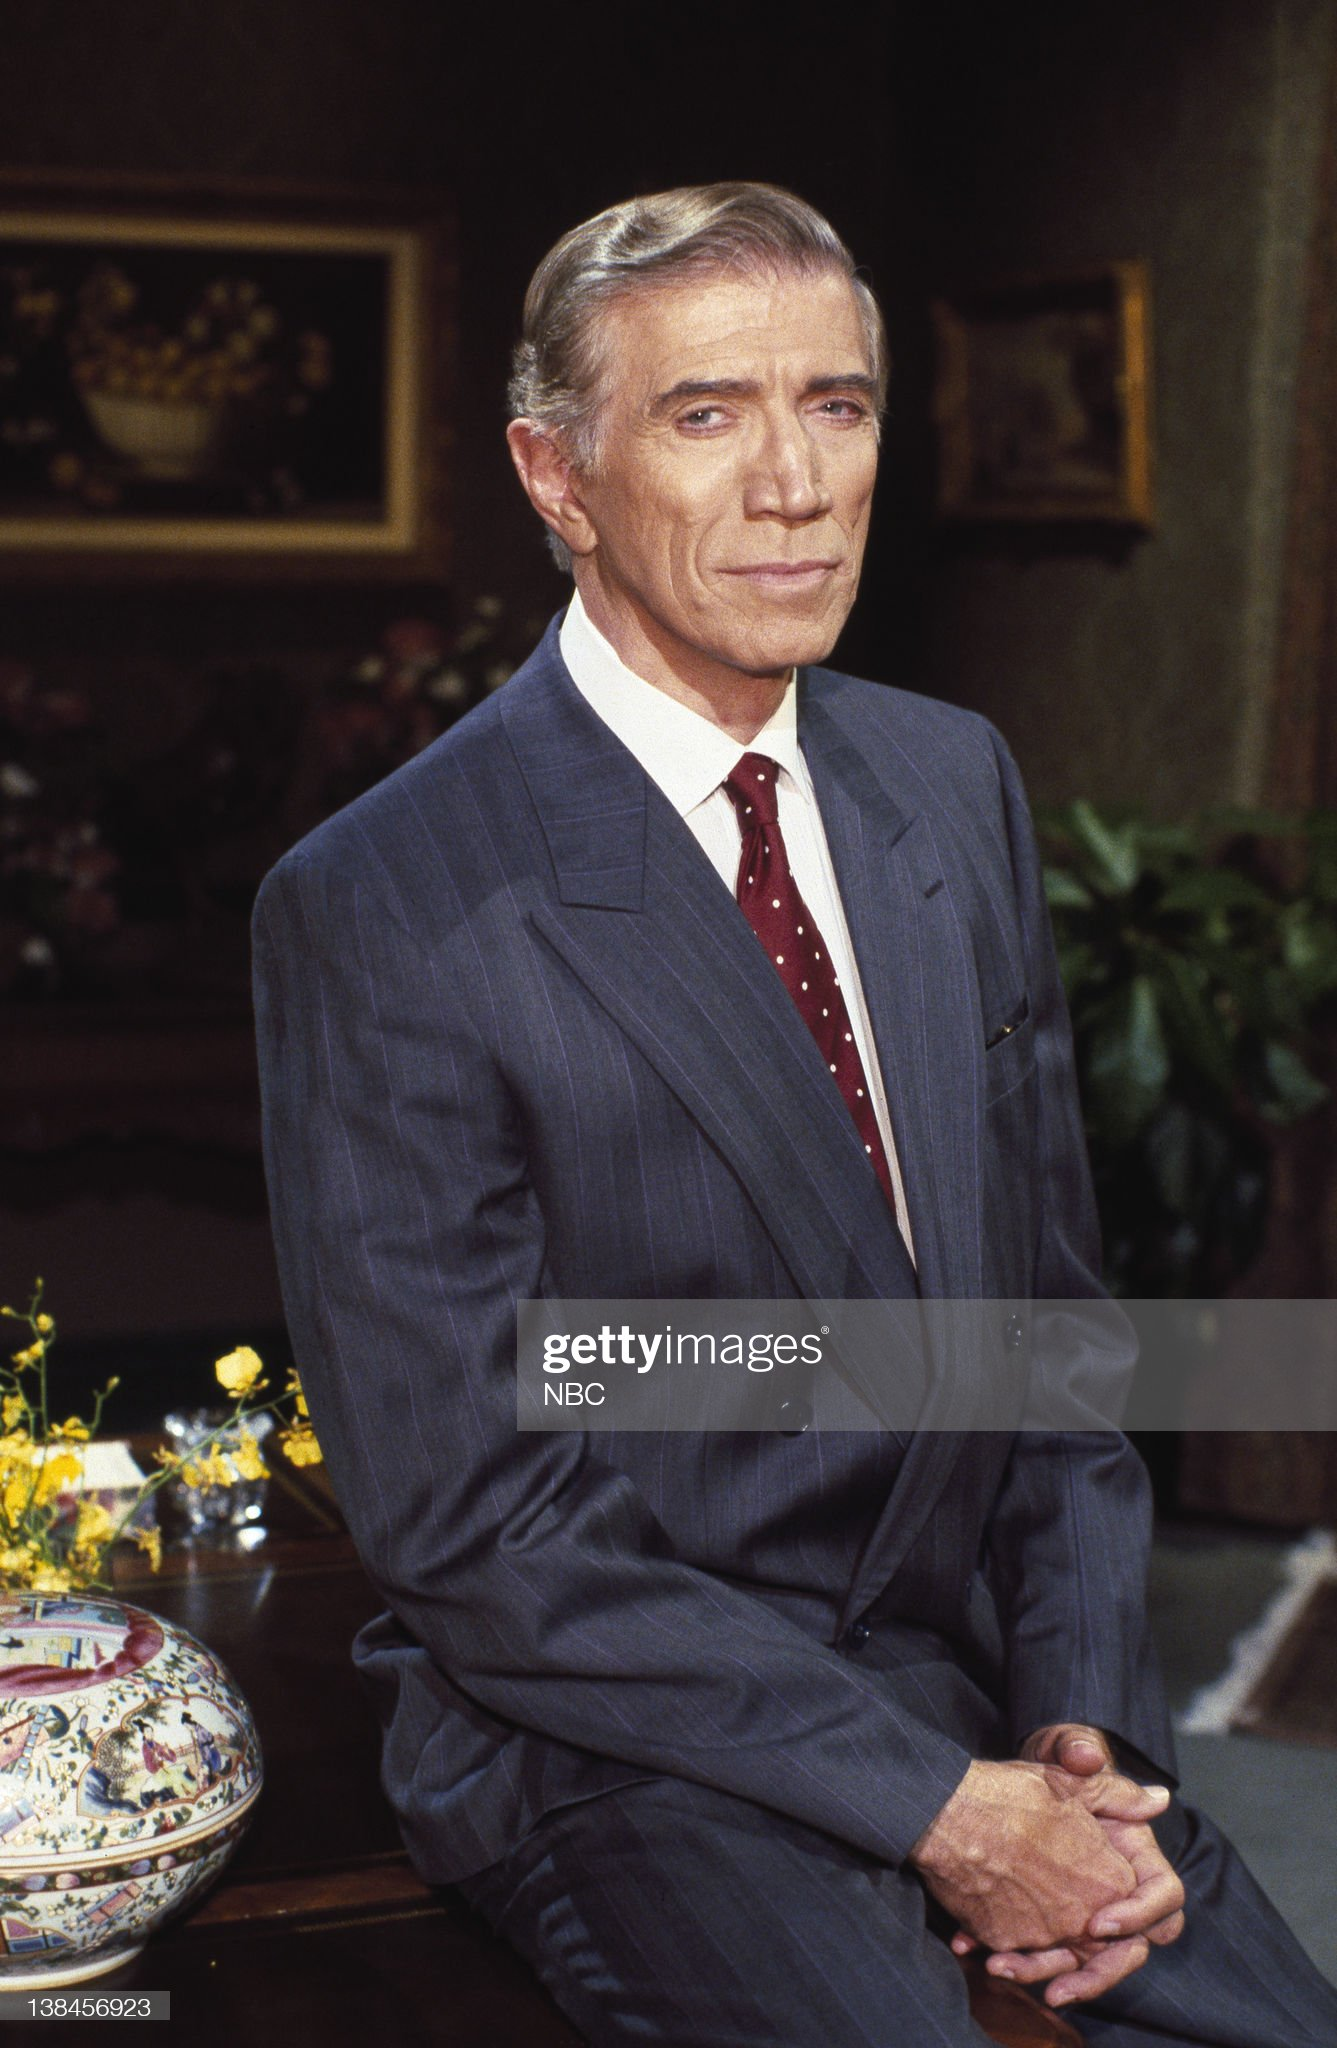 season-23-pictured-joseph-campanella-as-harper-deveraux-picture-id138456923